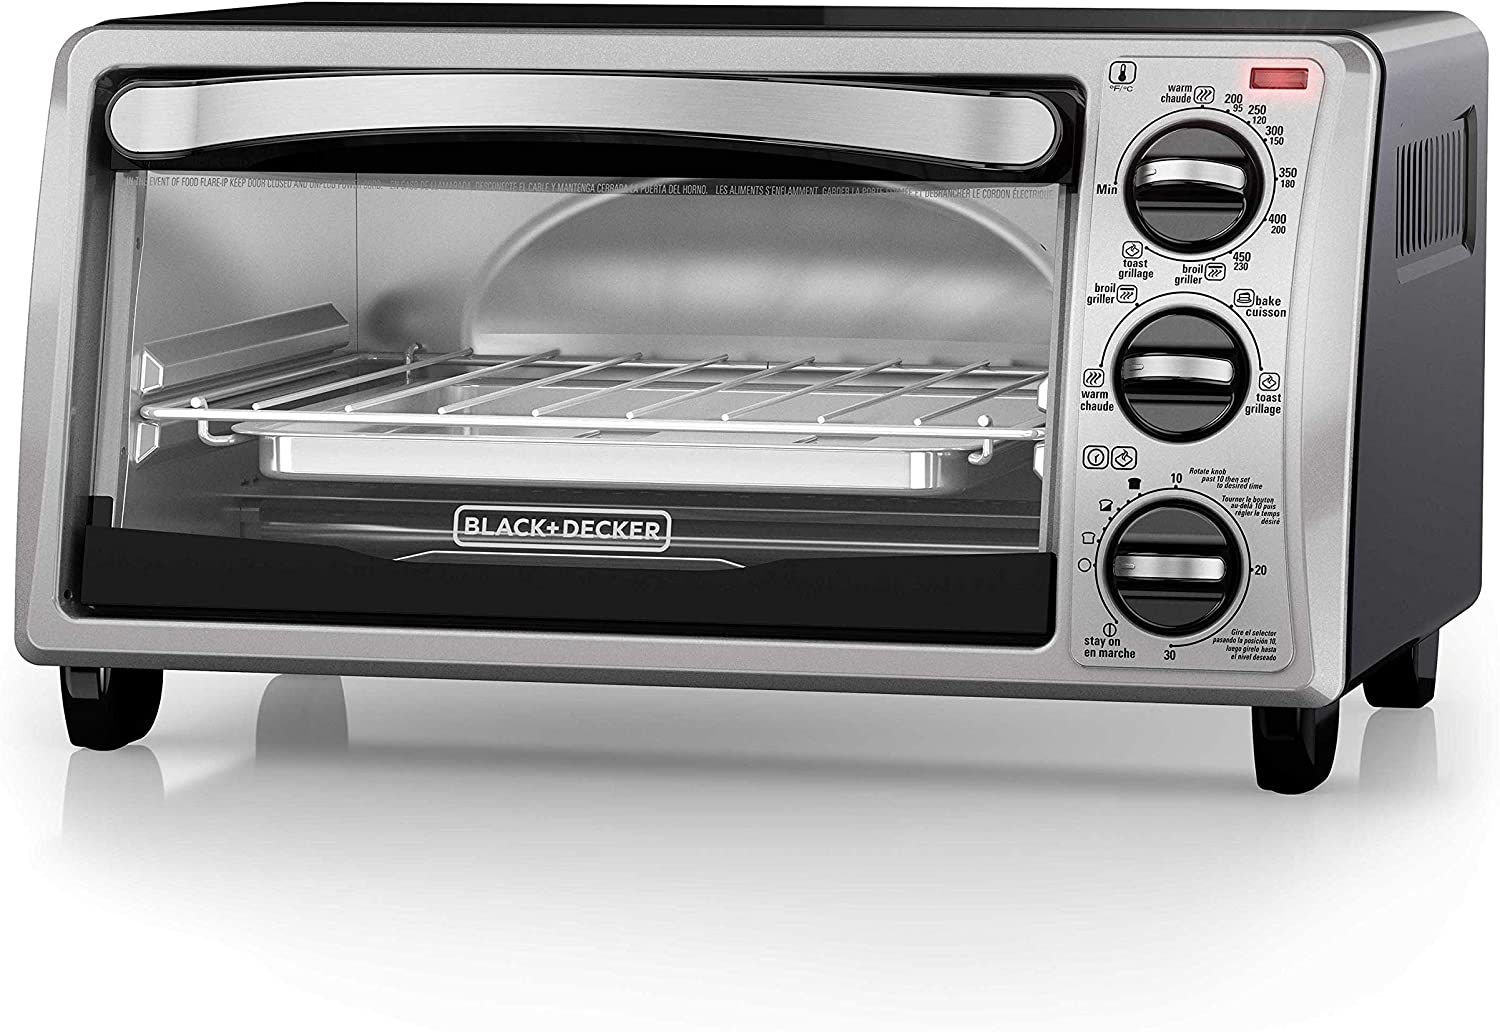 Black and Decker TO1313SBD 4-Slice Toaster Oven, Black